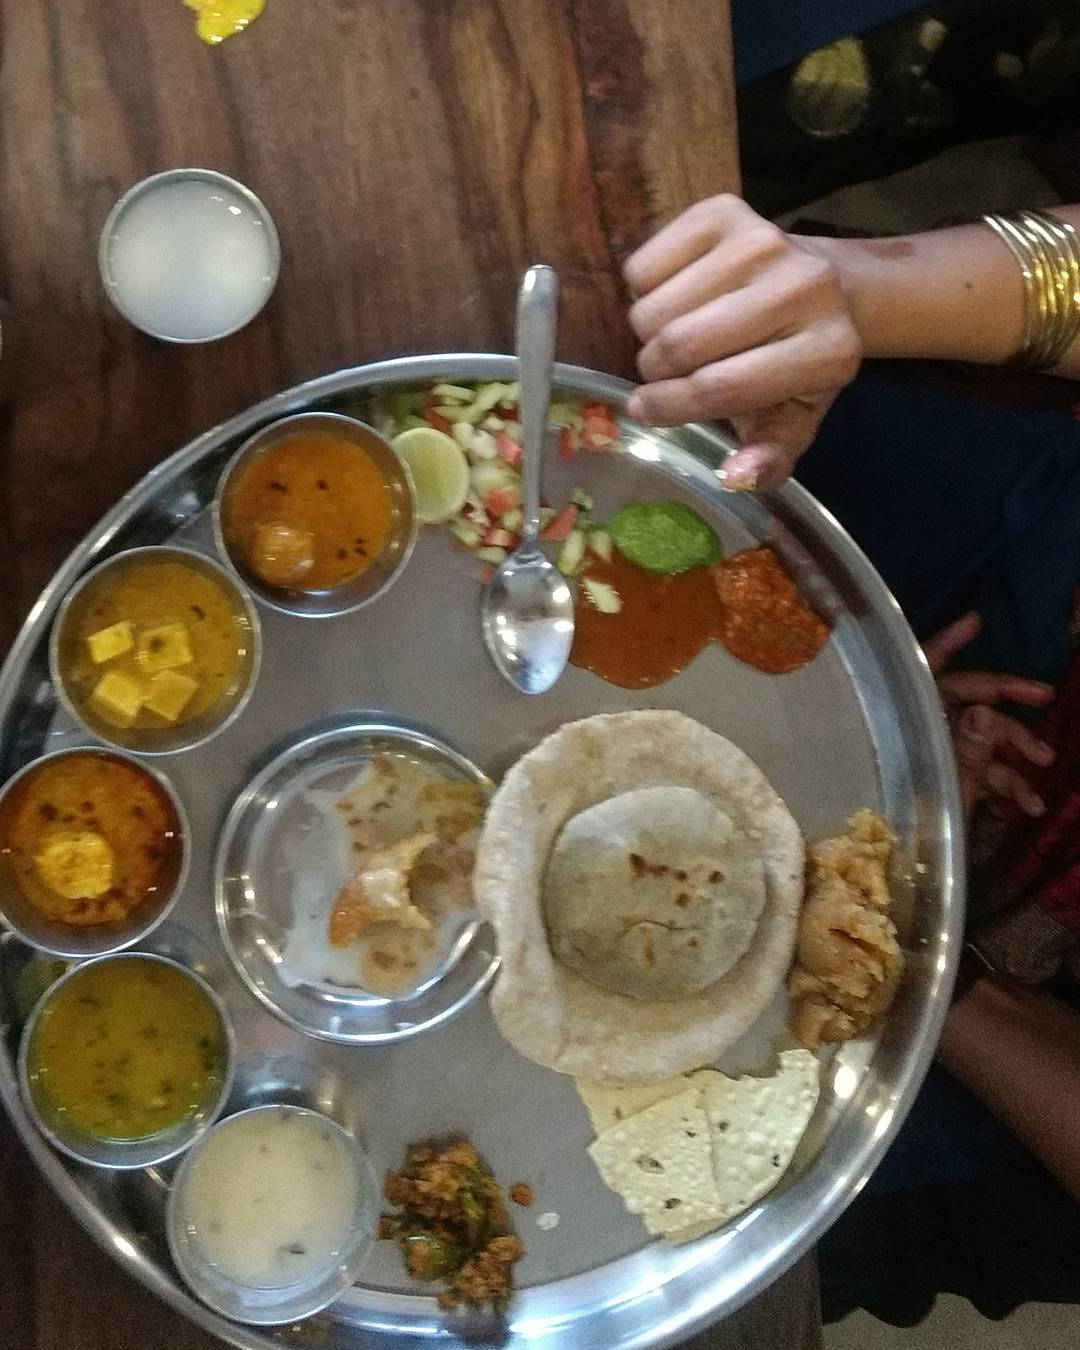 An Indian Thali or plate contains an assortment of dishesSabjiveggieshellip